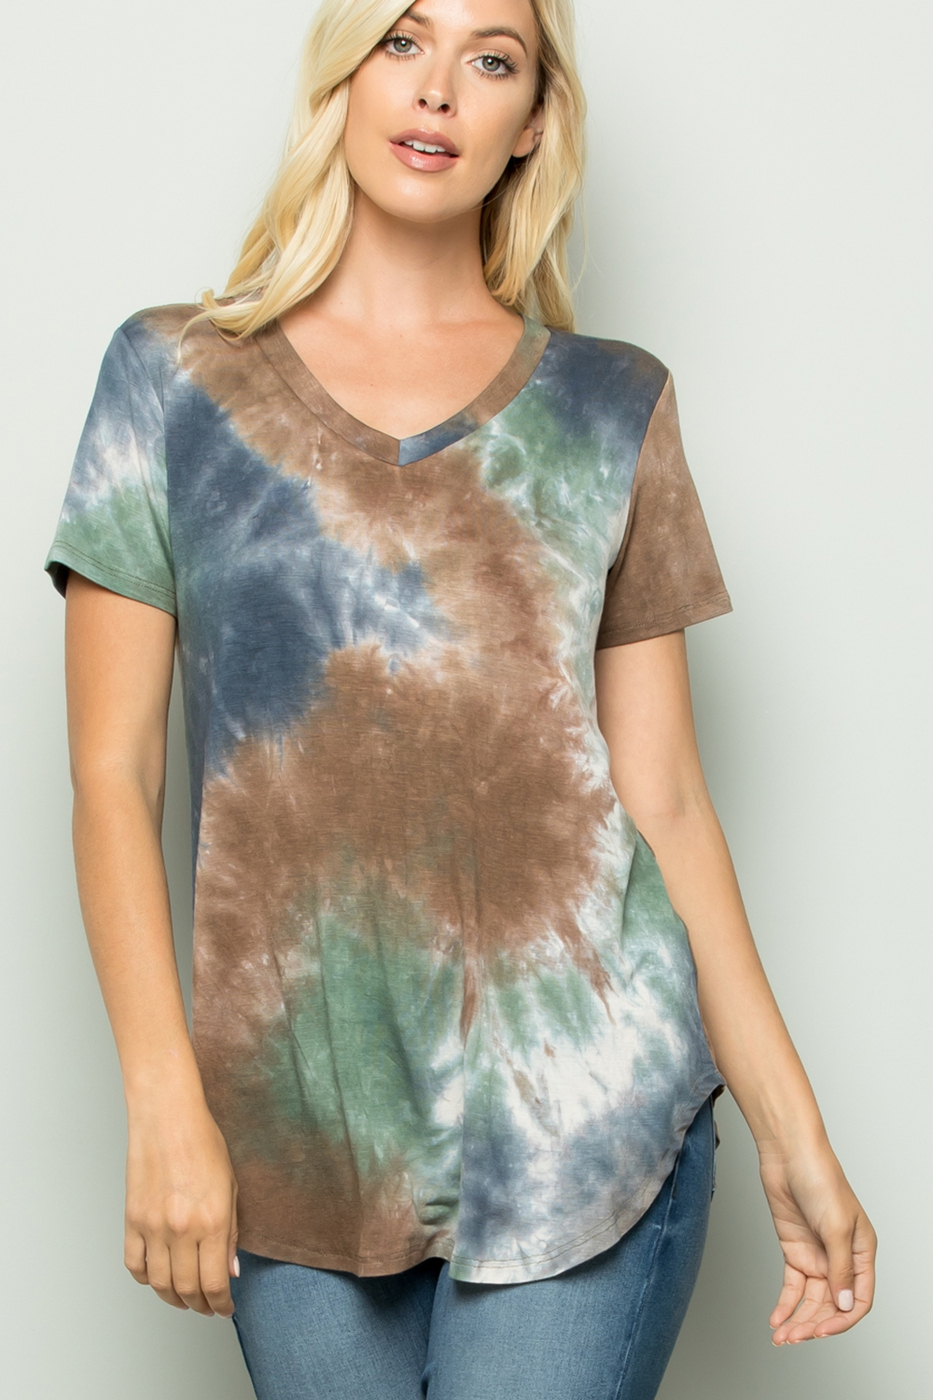 V NECK TIE DYE PRINT TOP - orangeshine.com